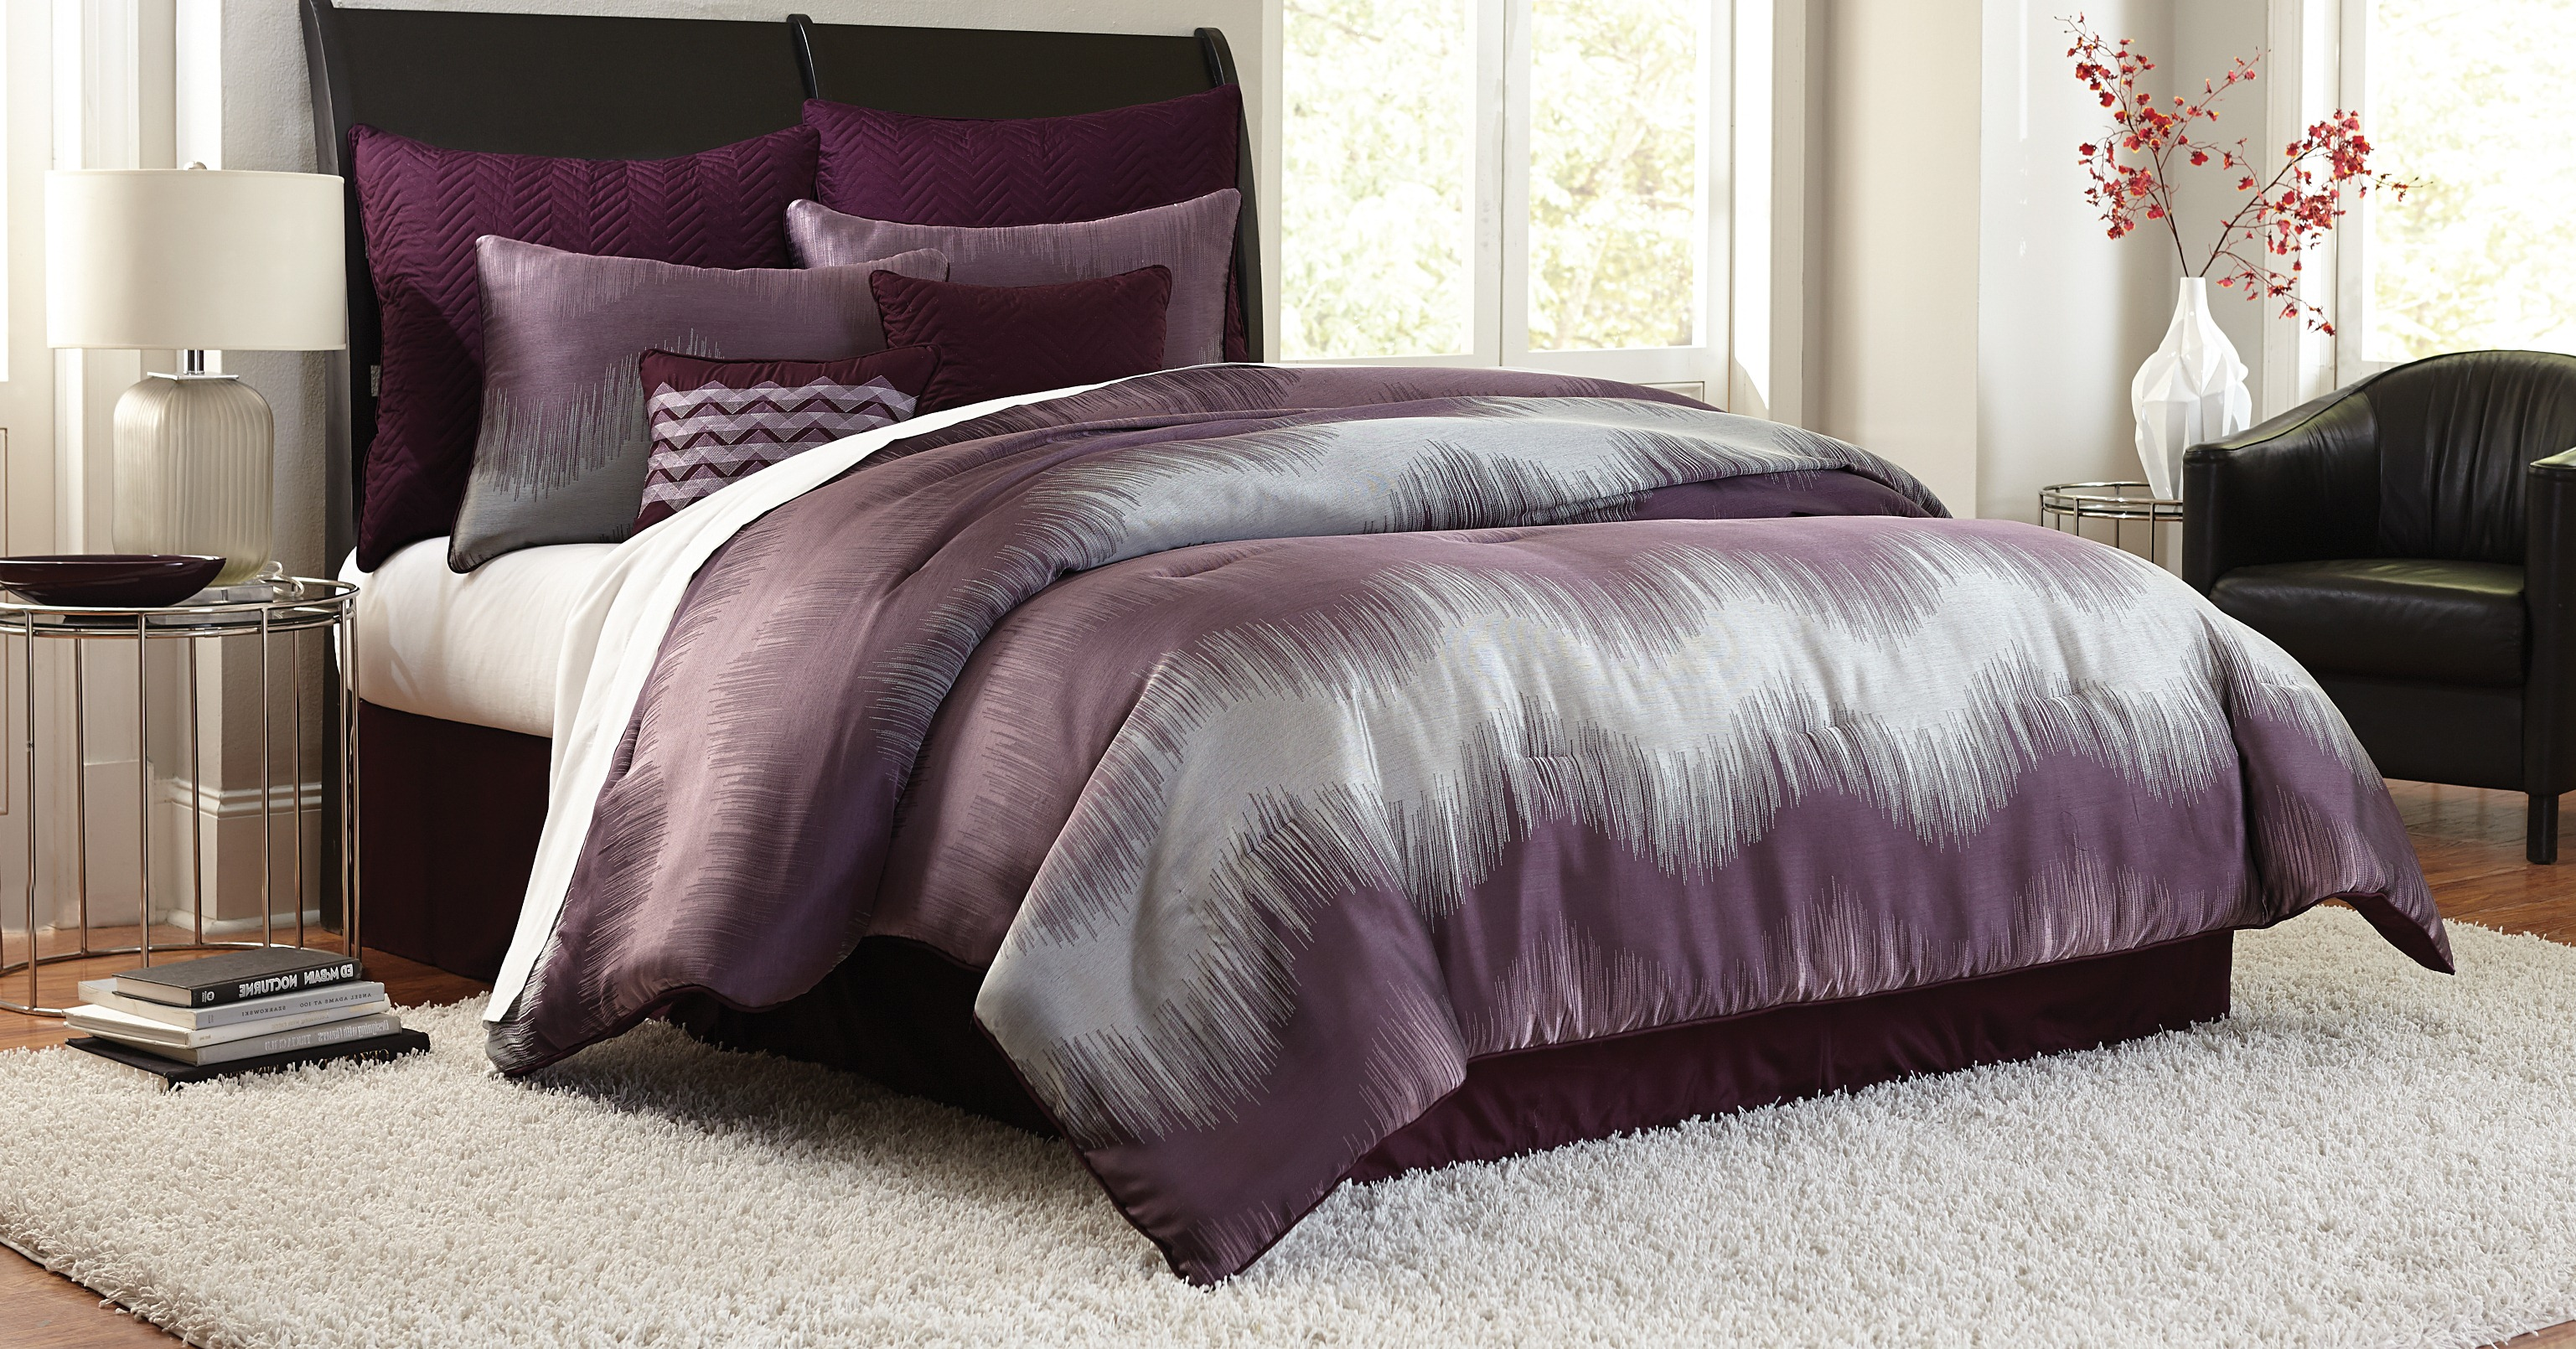 Purple Queen Comforter Set | Purple Comforter Sets | Purple and Grey Comforter Sets